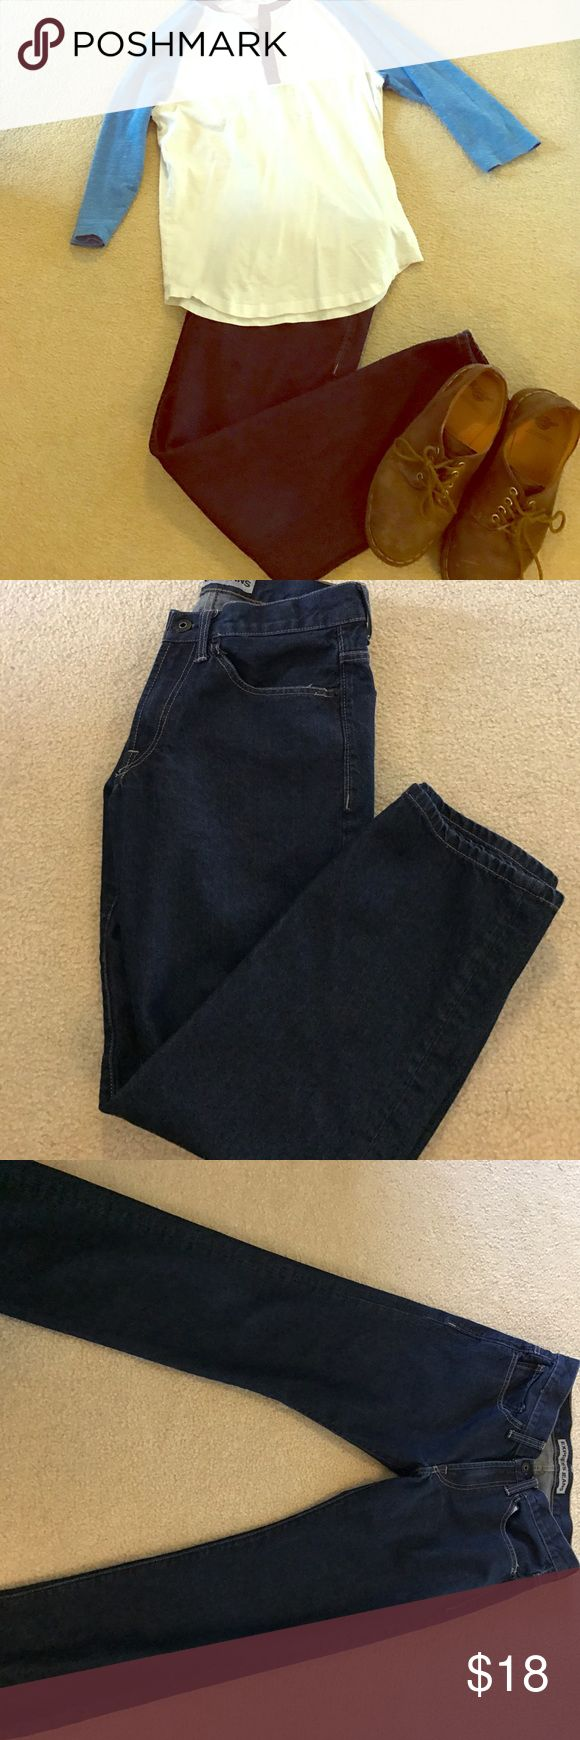 Dark wash Express men's jeans Practically new express dark wash Kingston classic fit straight leg jeans. Size 30x30. Shoes in cover photo are also available in my closet! Express Jeans Straight